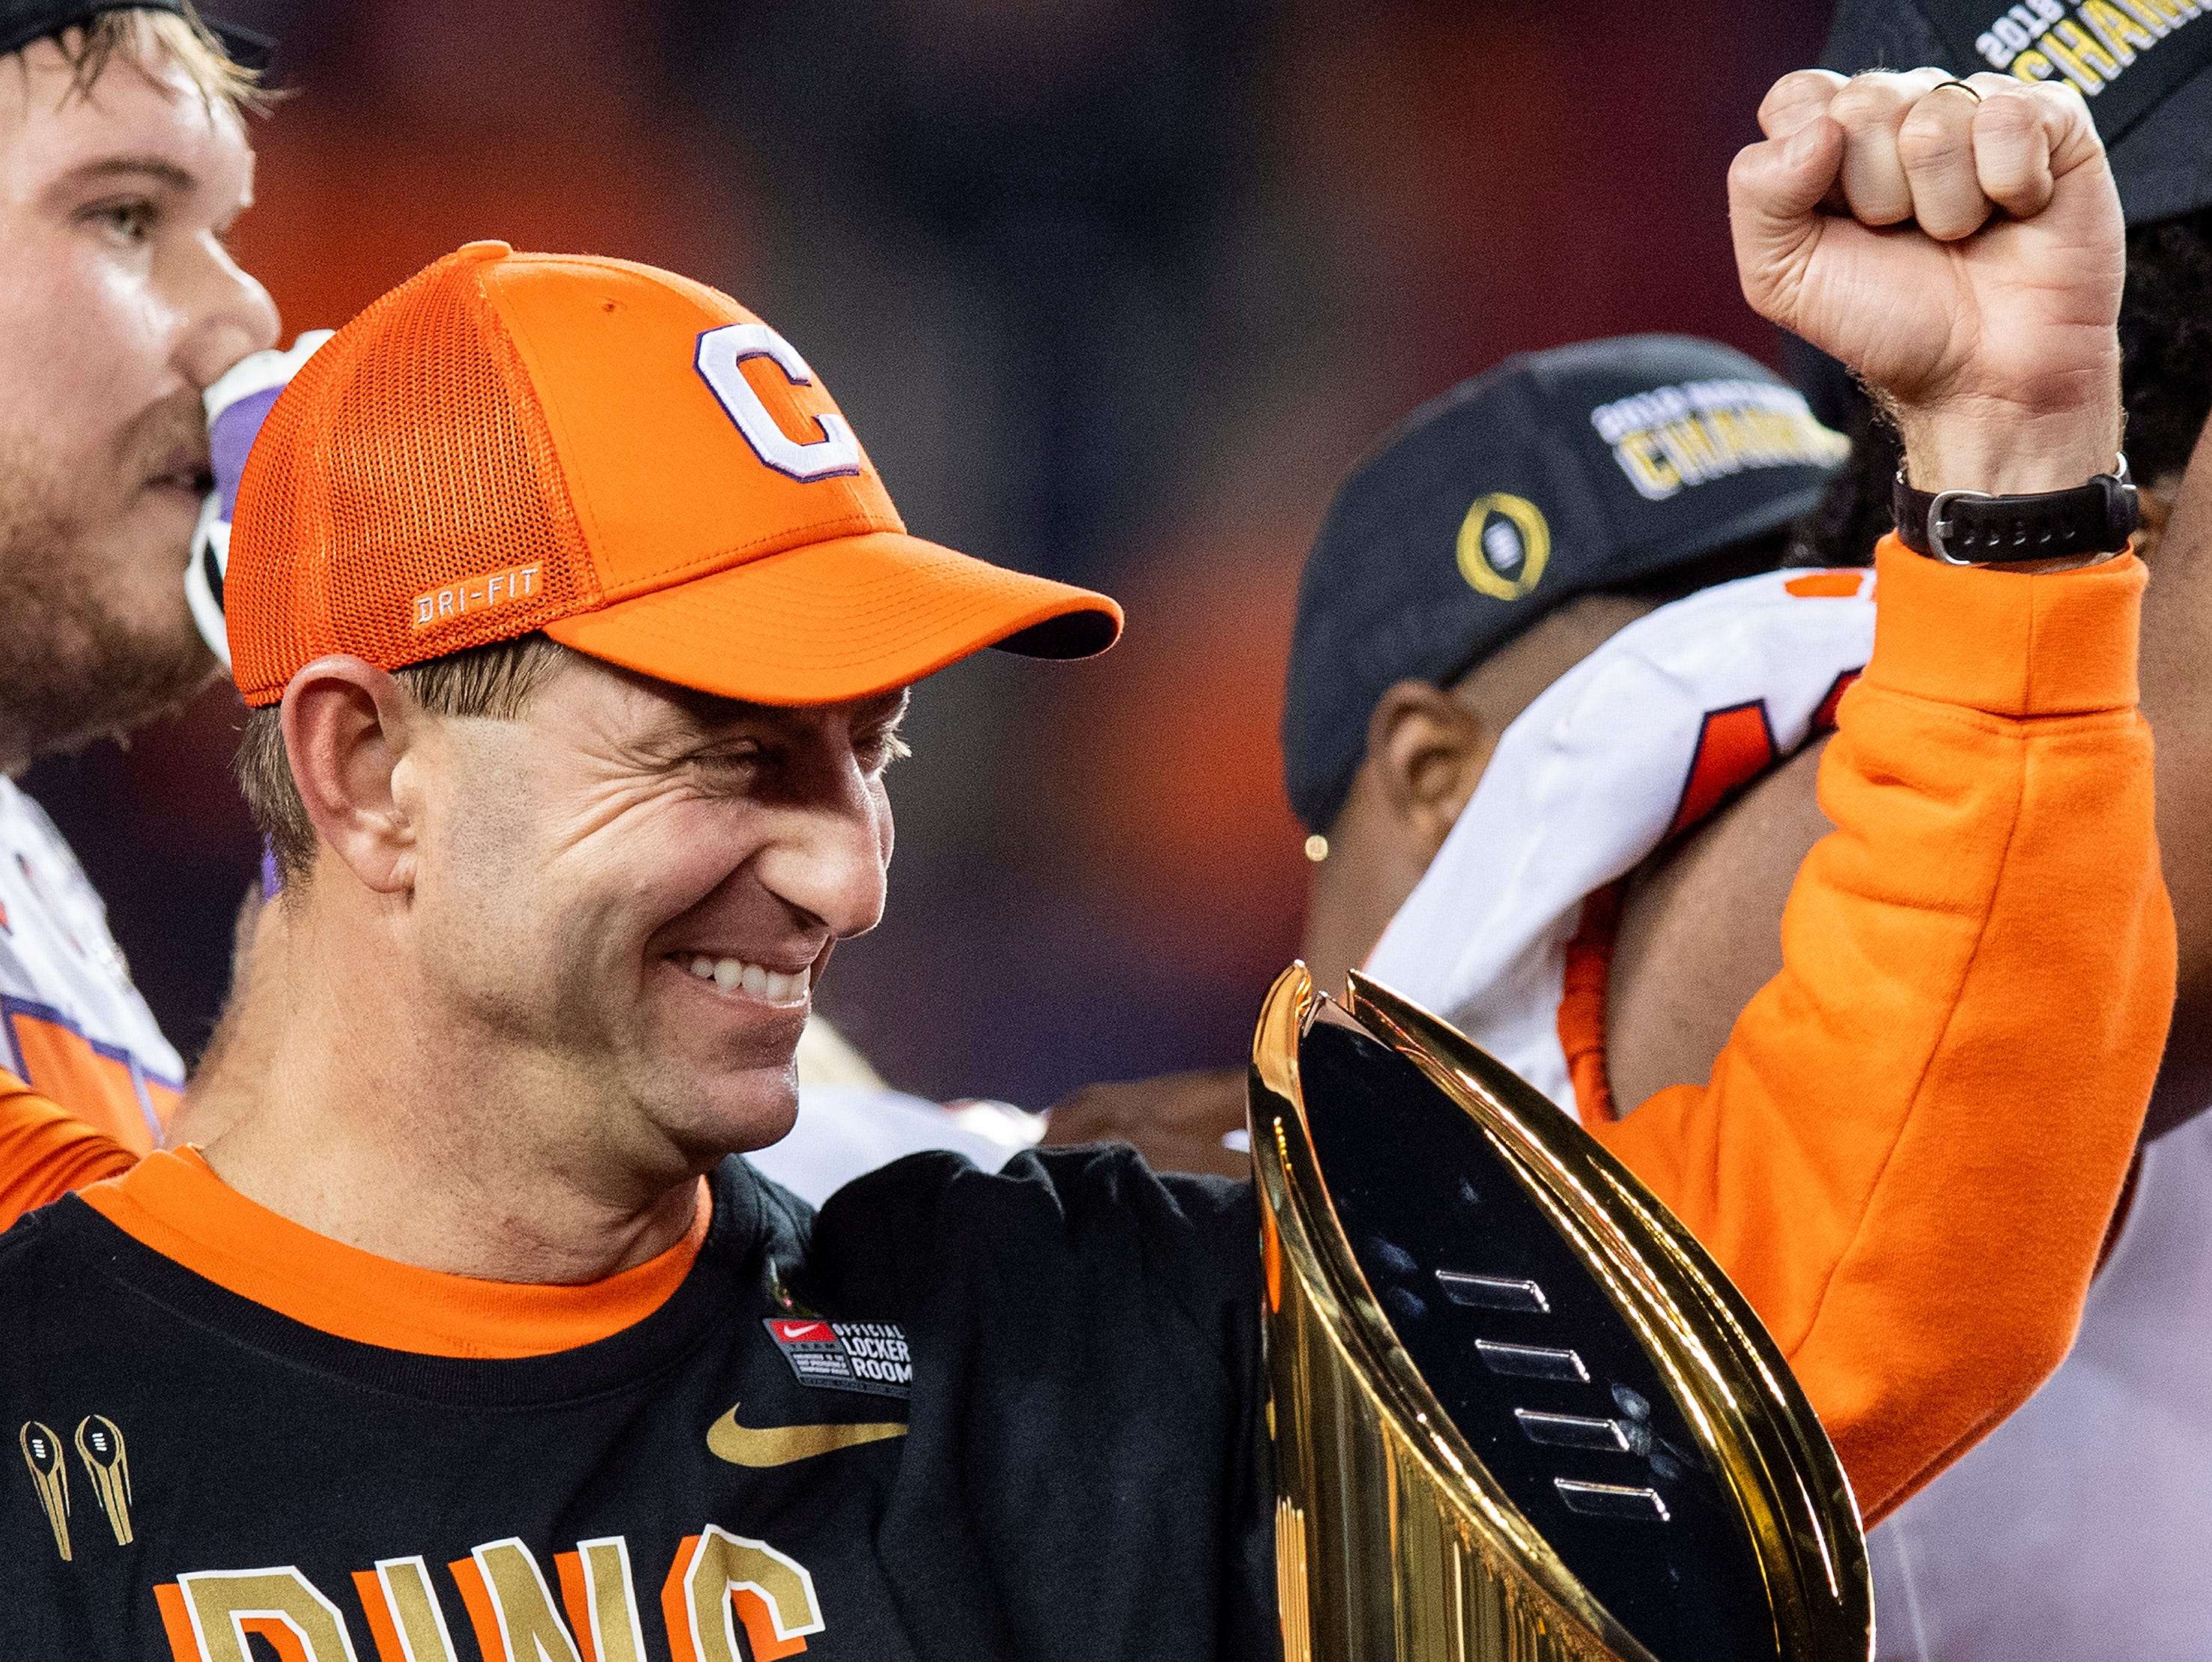 Clemson head coach Dabo Swinney after defeating Alabama in the College Football Playoff National Championship game at Levi's Stadium in Santa Clara, Ca., on Monday January 7, 2019.